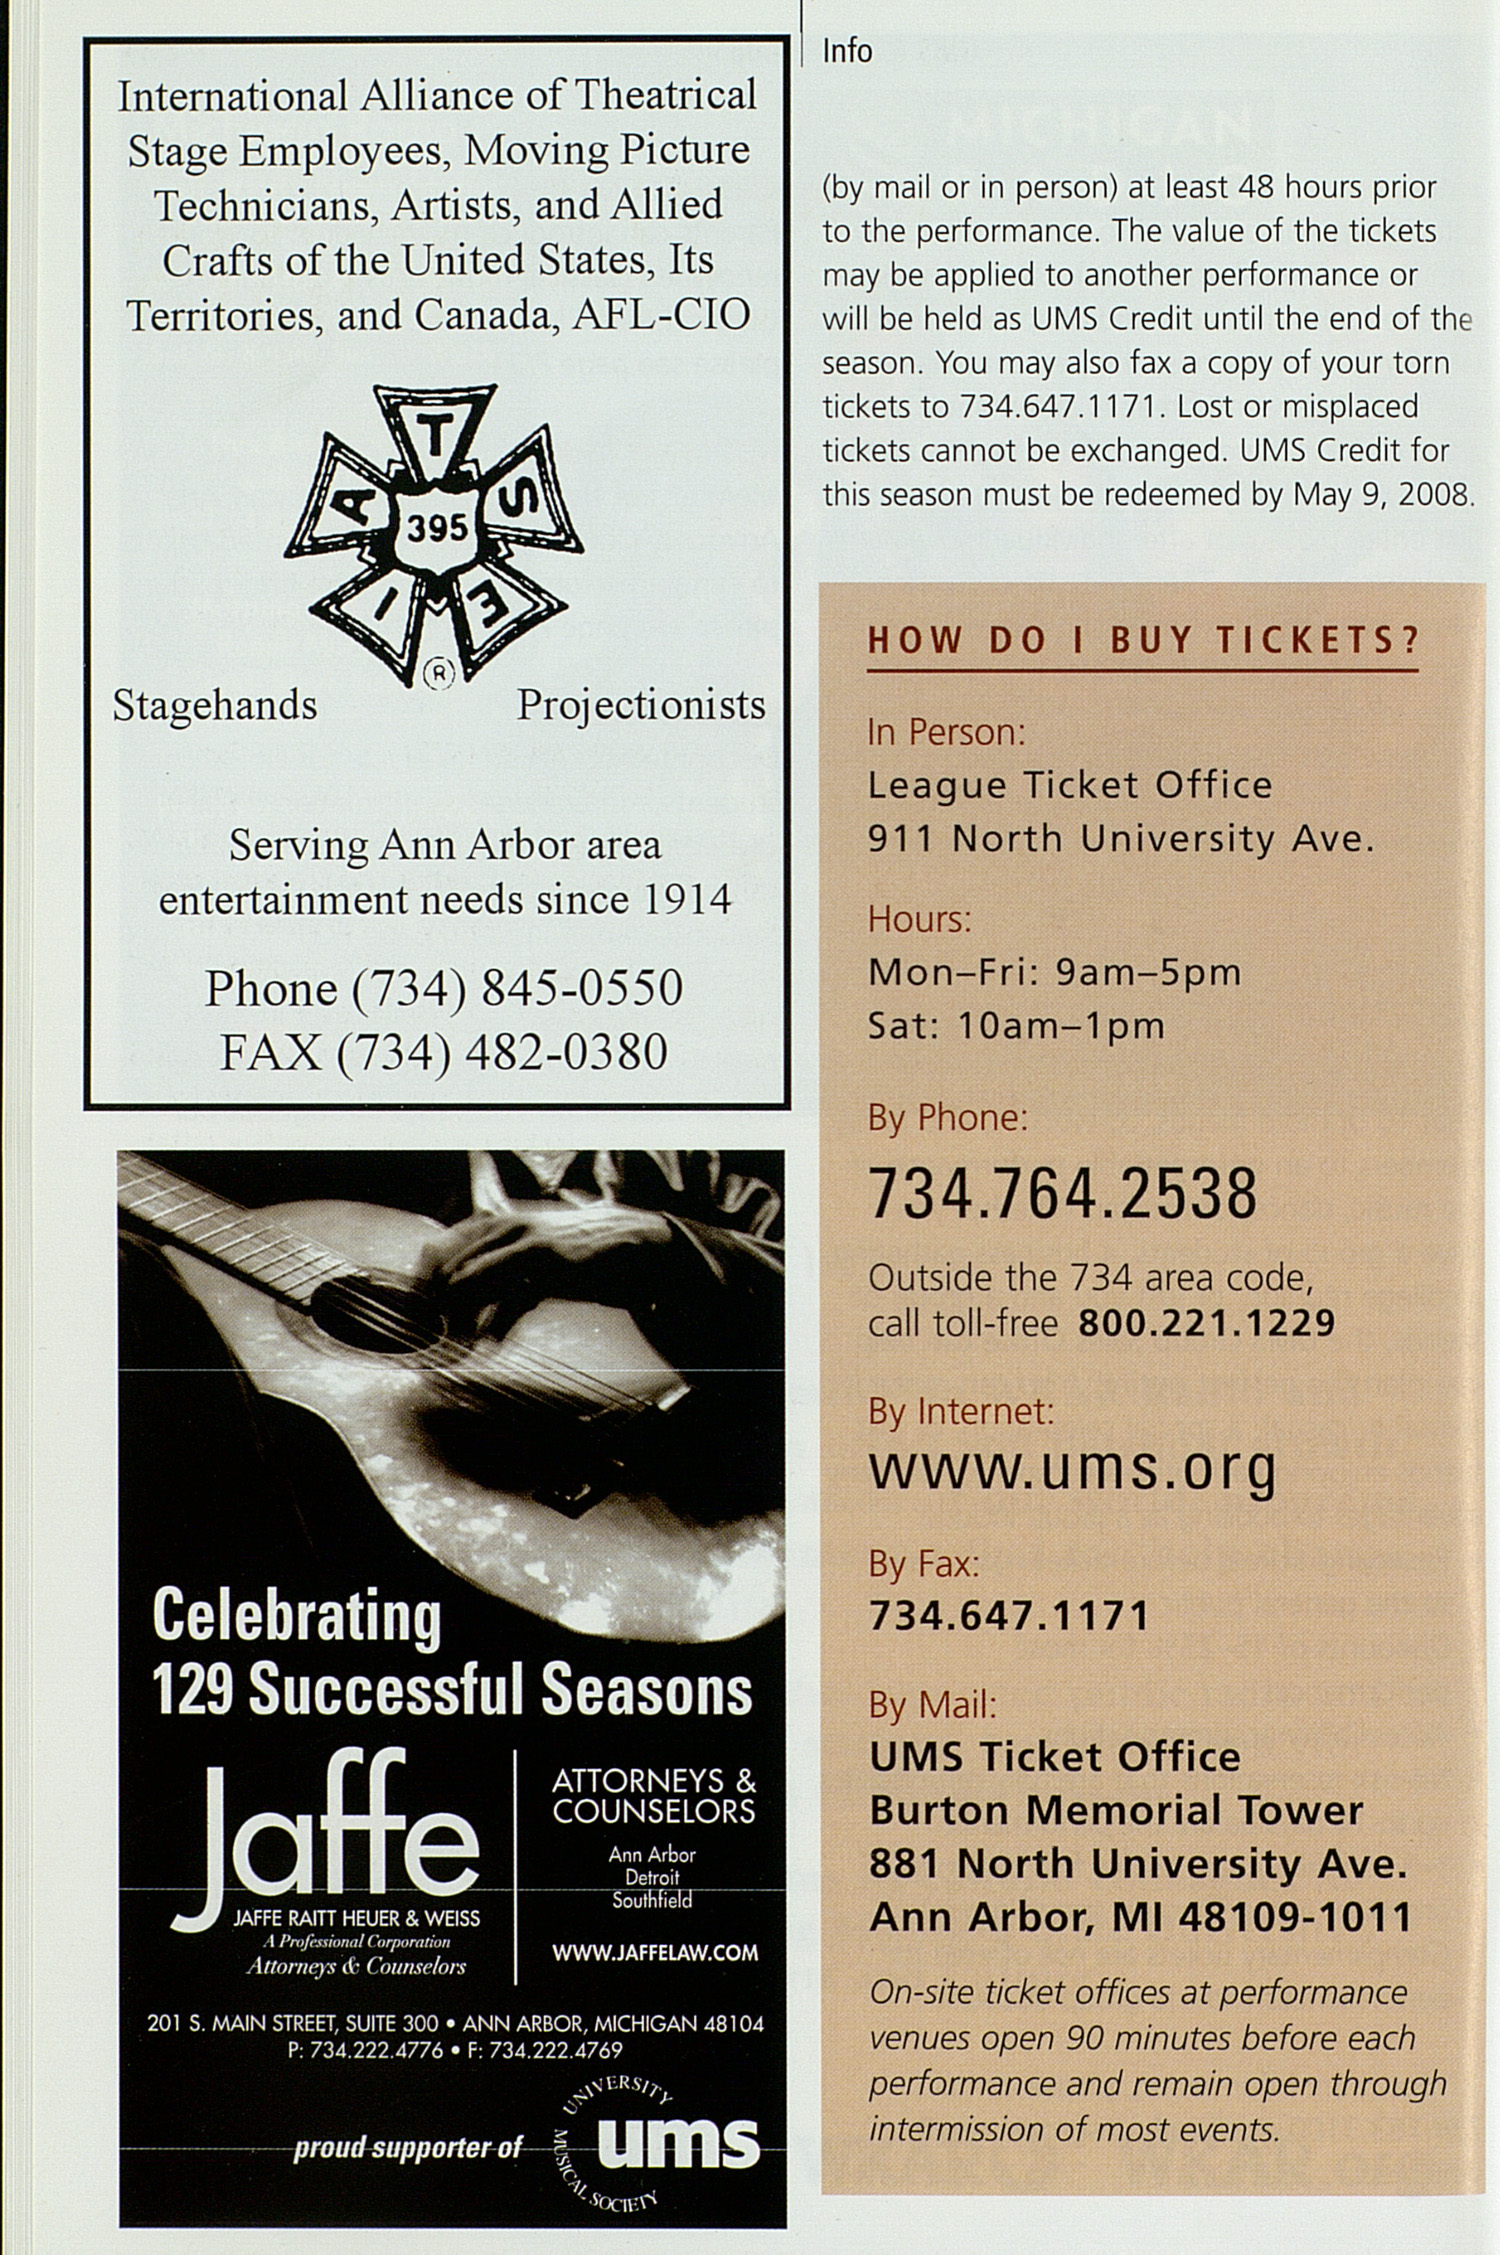 UMS Concert Program, Wednesday Jan. 16 To 27: University Musical Society: Winter 2008 - Wednesday Jan. 16 To 27 --  image